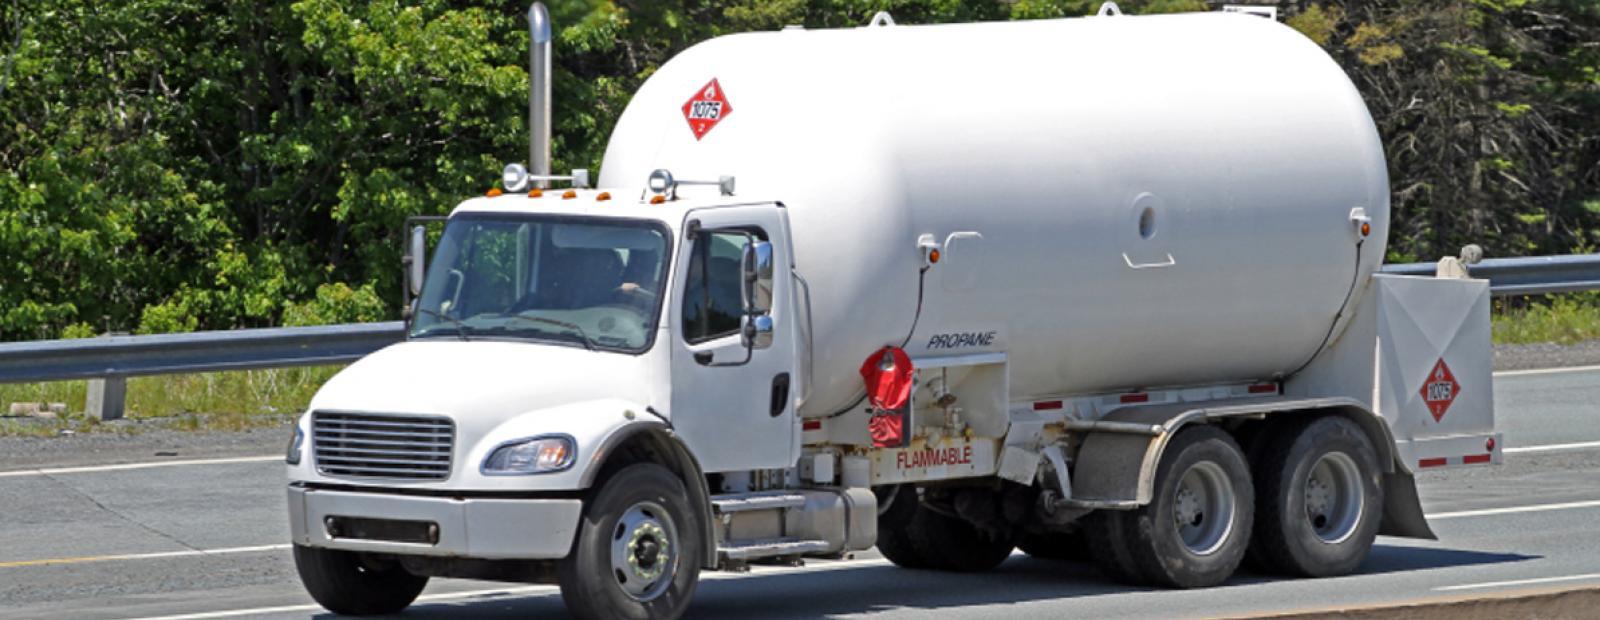 energy insurance - propane delivery truck